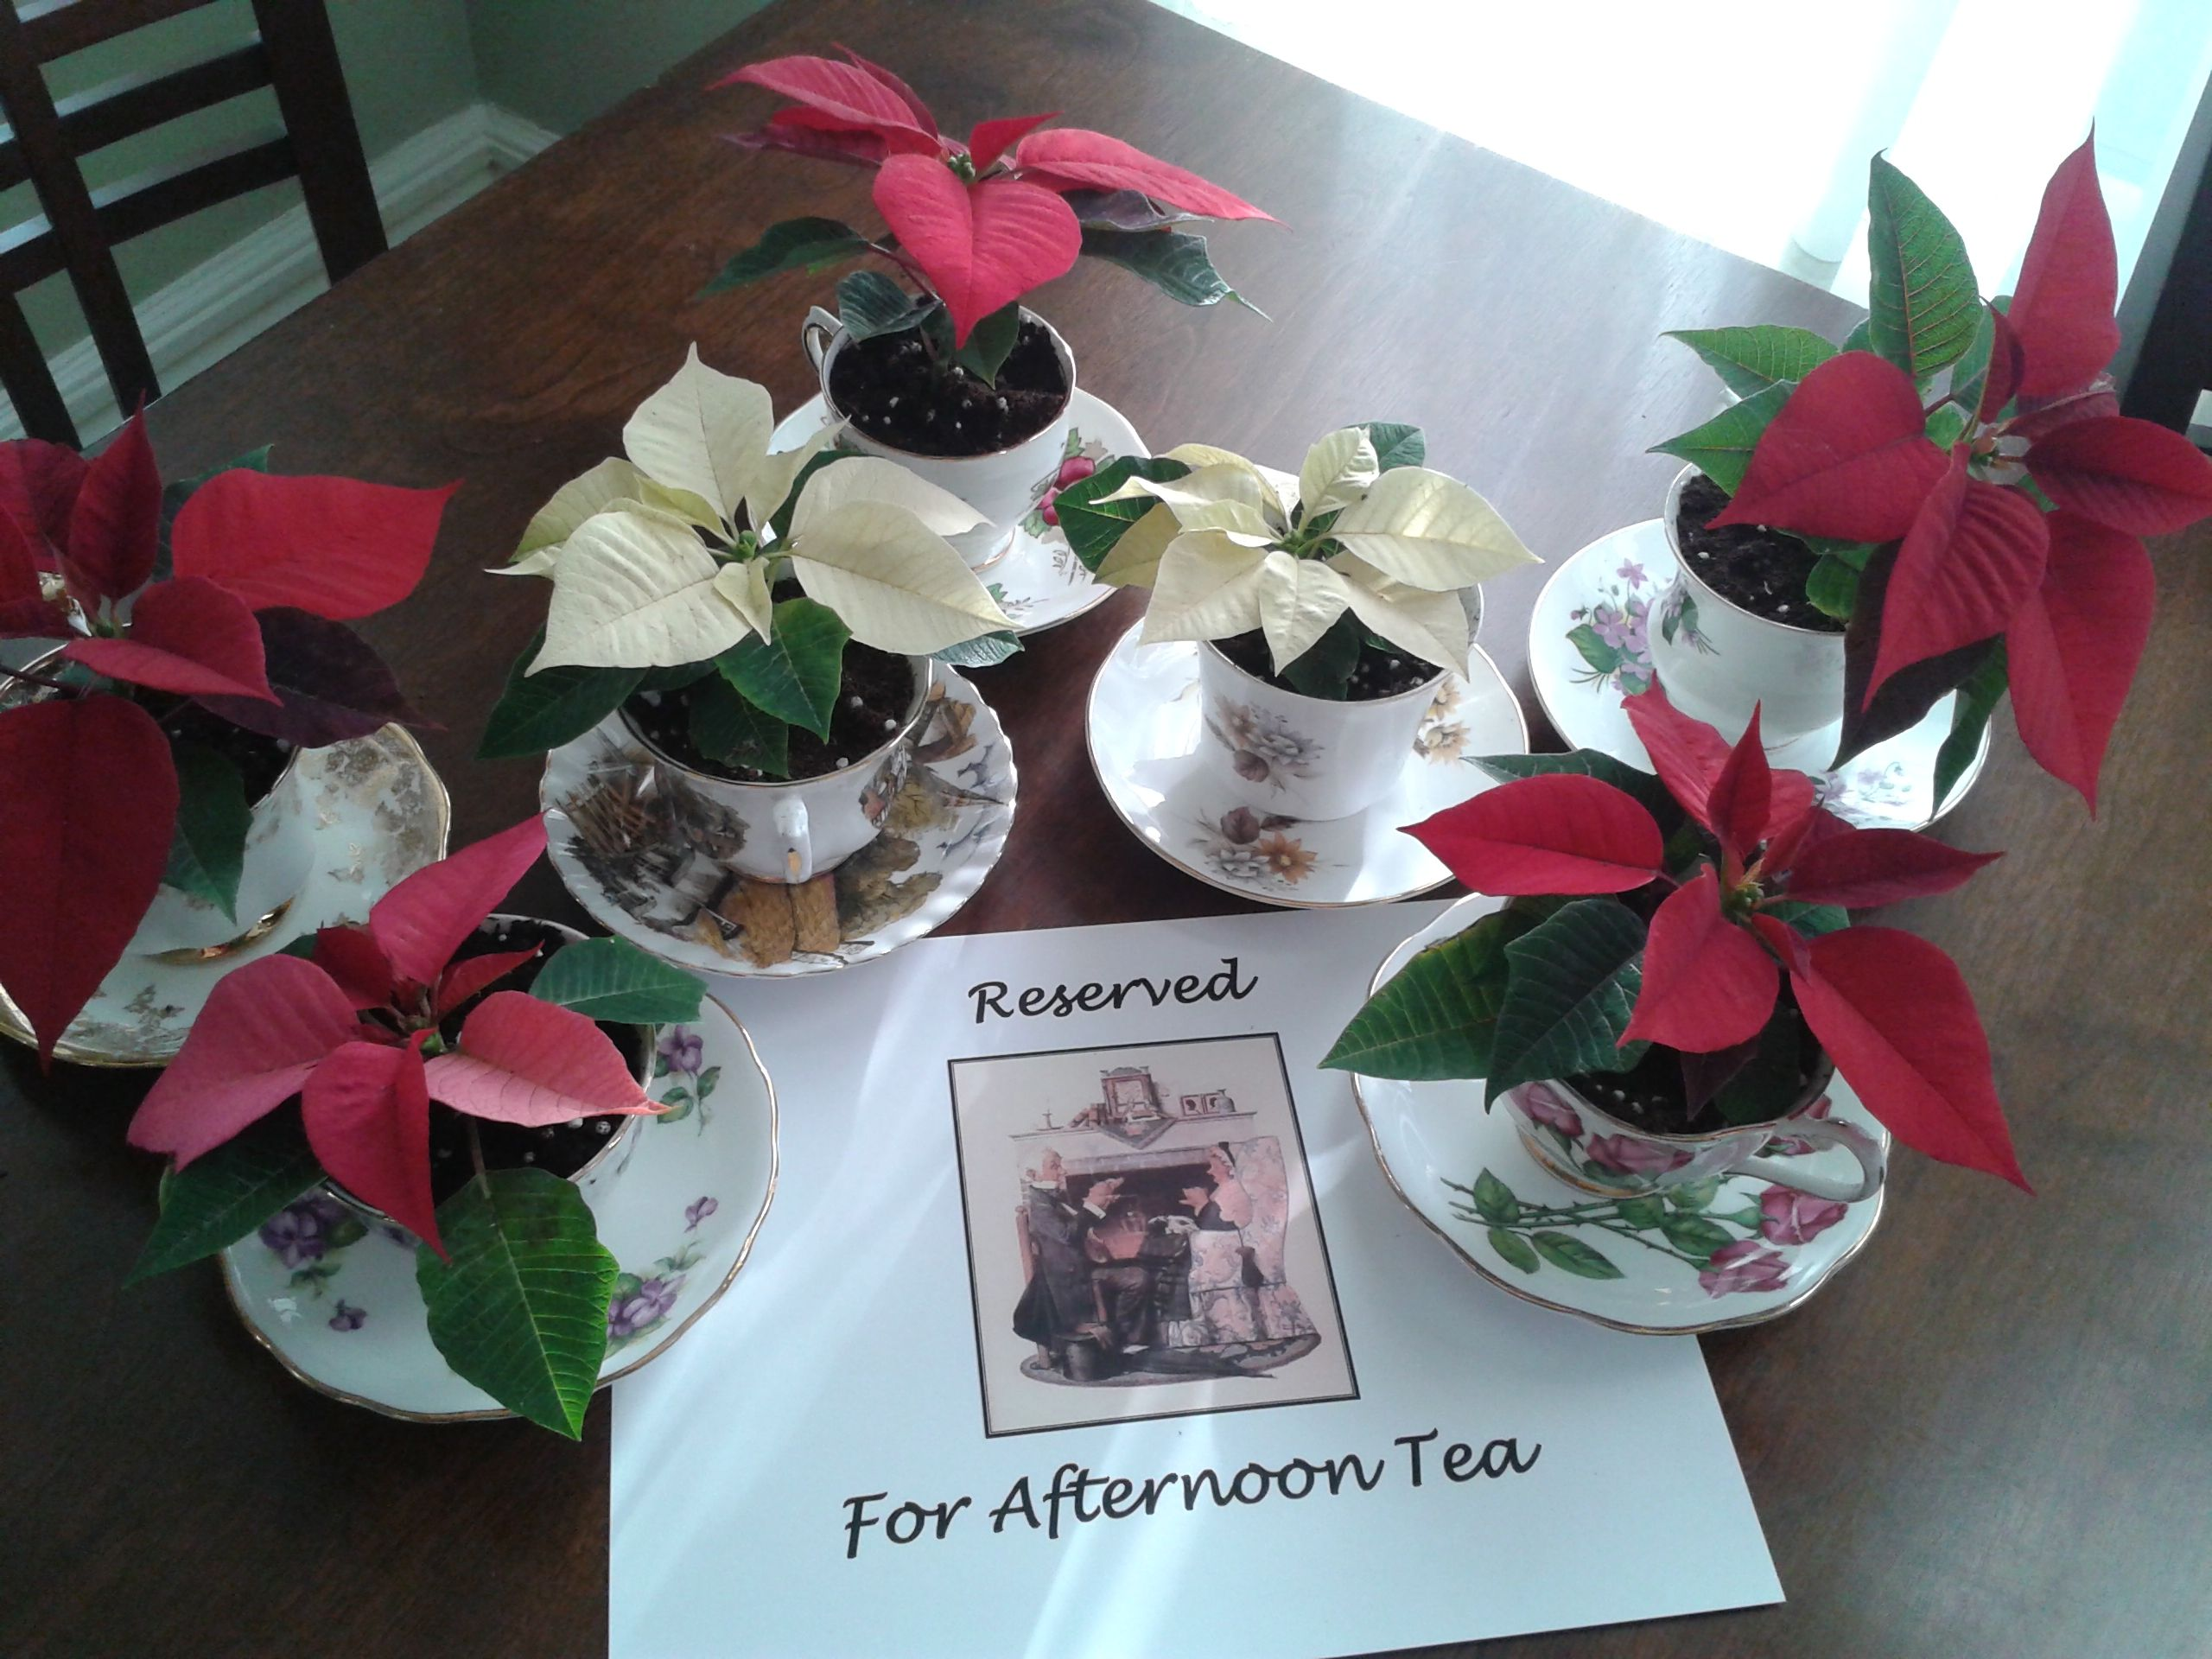 Mini pointsettia in cups and saucers. For sale at our afternoon tea this Sunday. $10. For more information about our afternoon tea this Sunday visit http://bit.ly/1zlcZMI